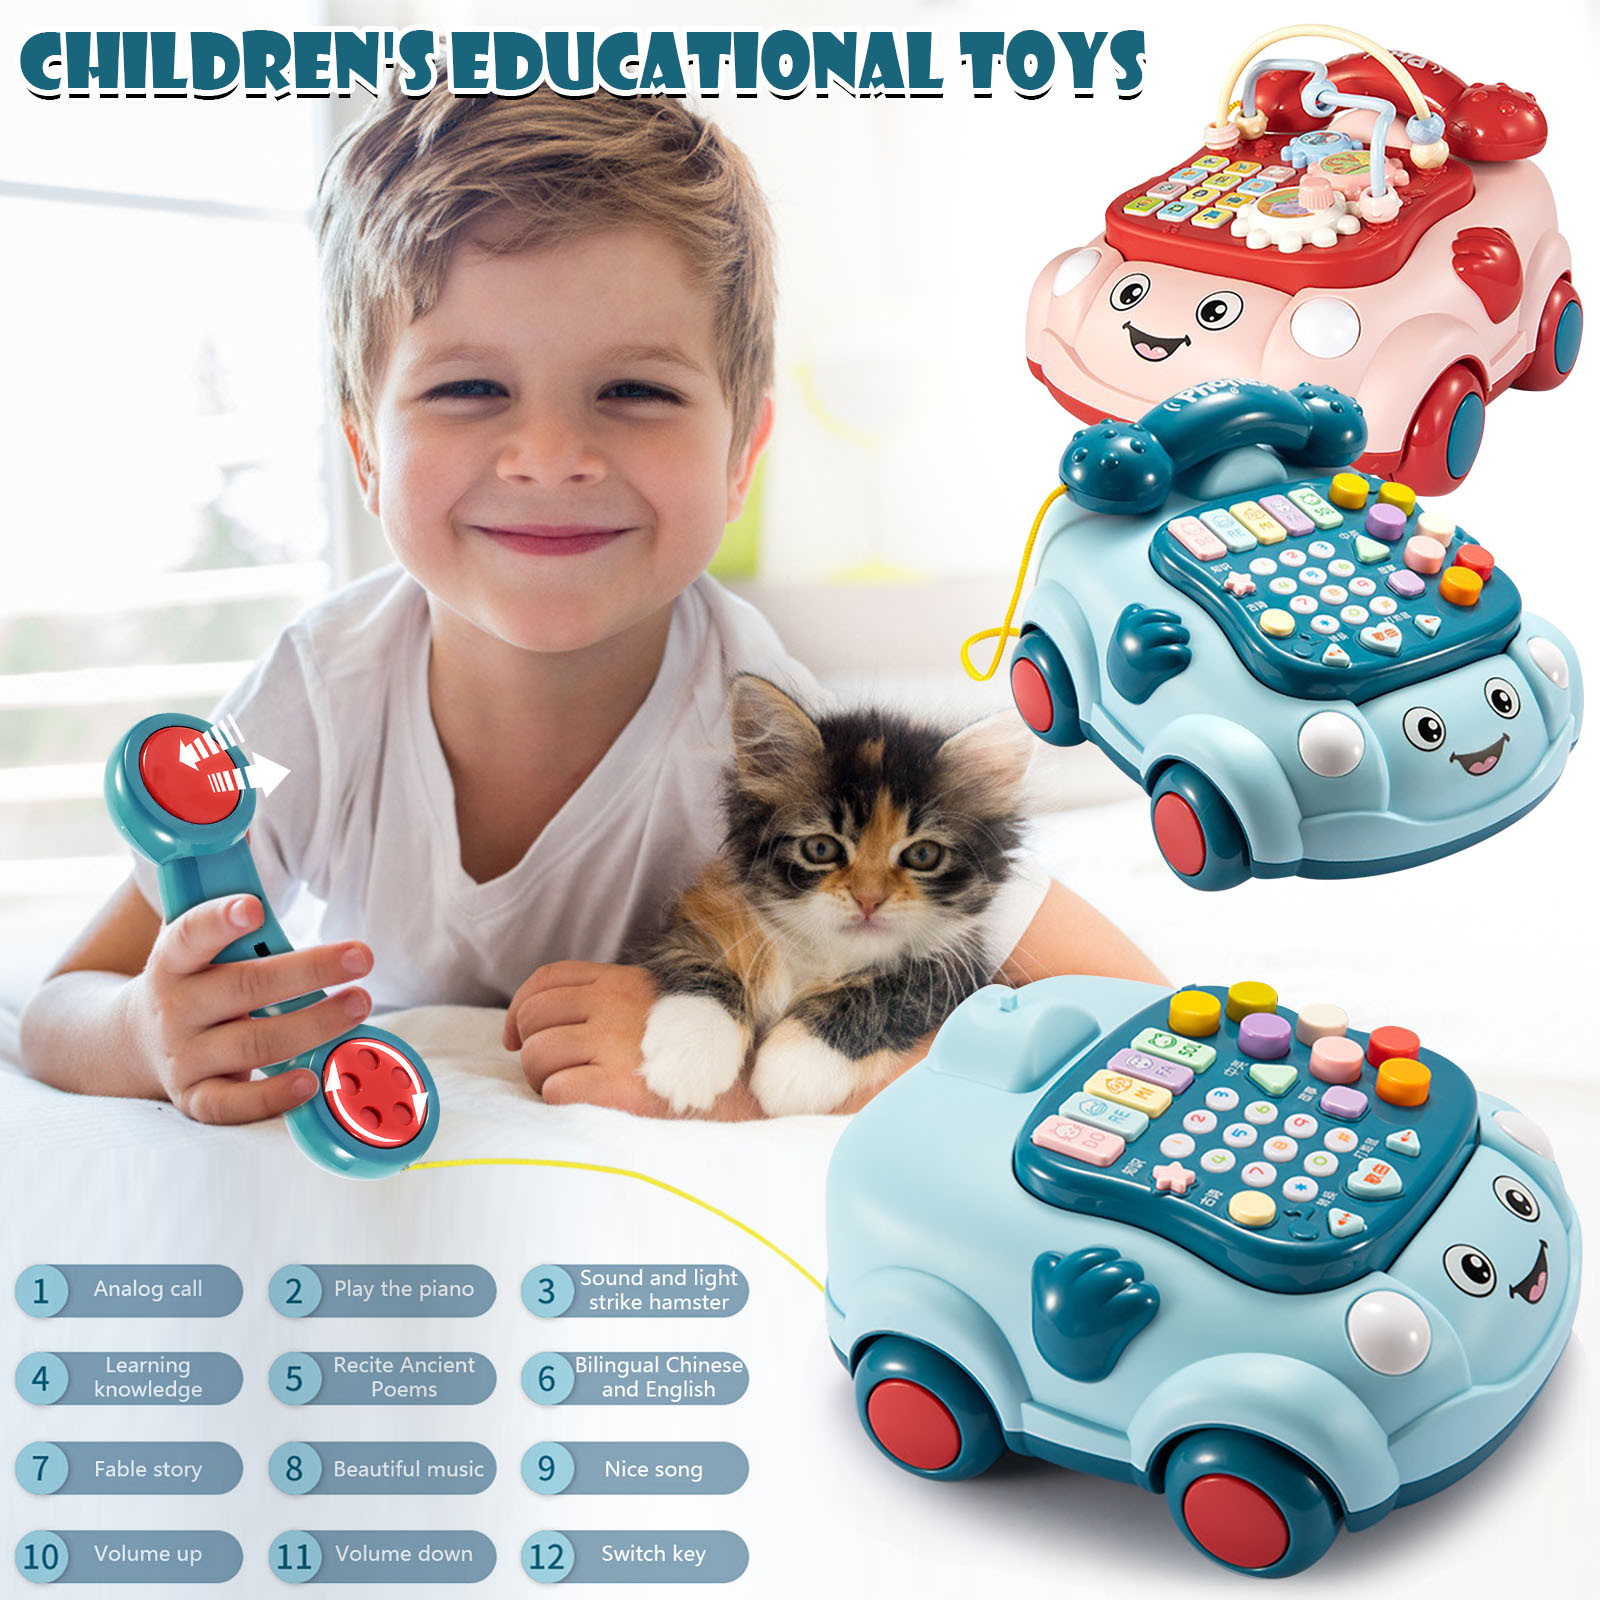 #5 Early Education Telephone Children's Toys 1-3 Years Old Baby Puzzle Music Phone Emulated Telephone Musical Toys For Kid